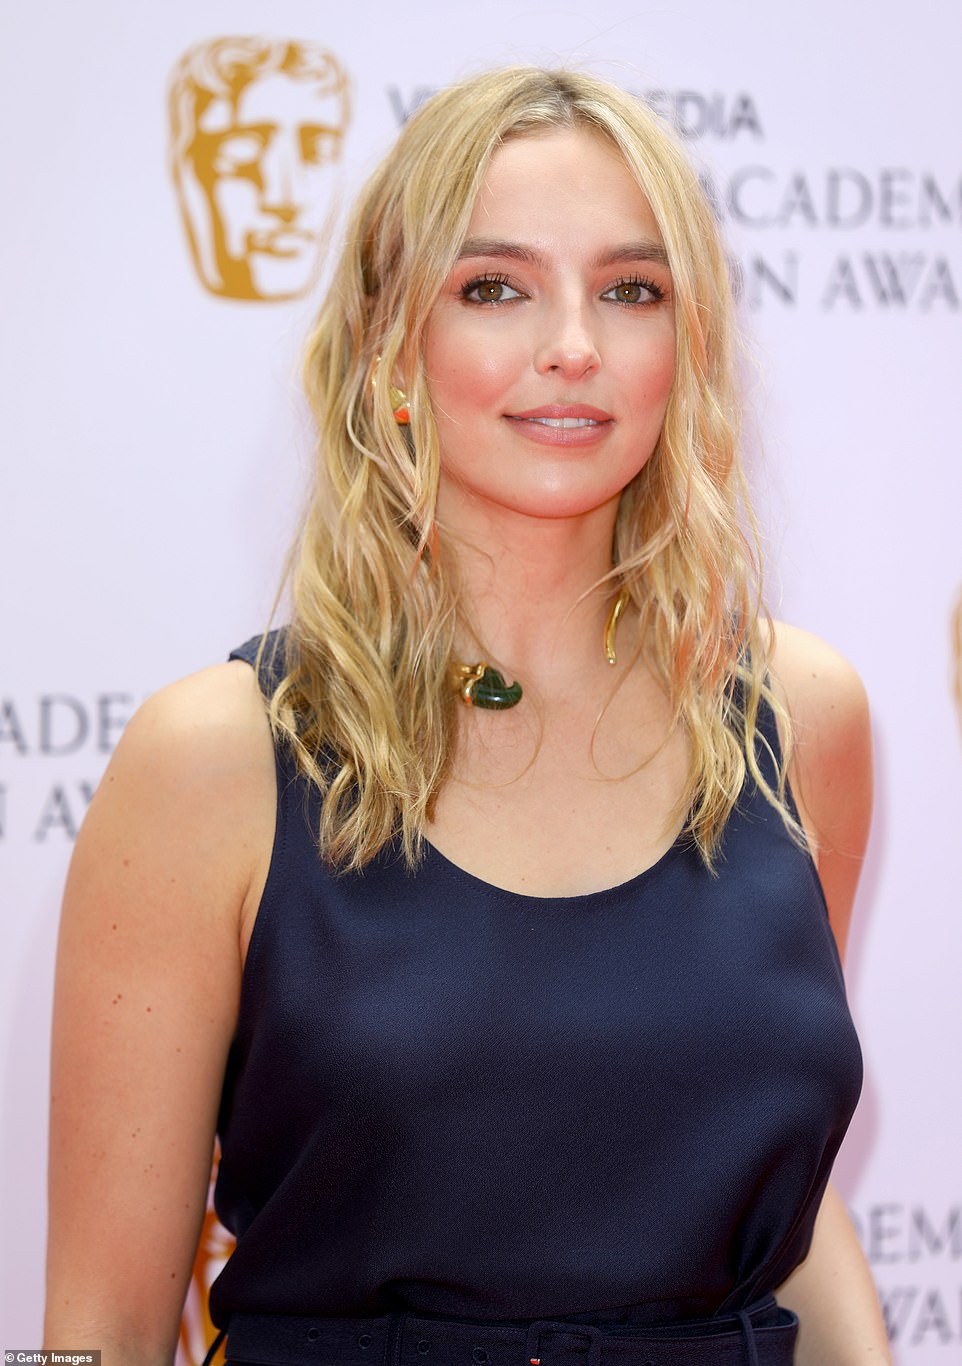 Bold jewellery: While her ensemble was simple, she added bold jewellery, including an open choker and colourful earrings